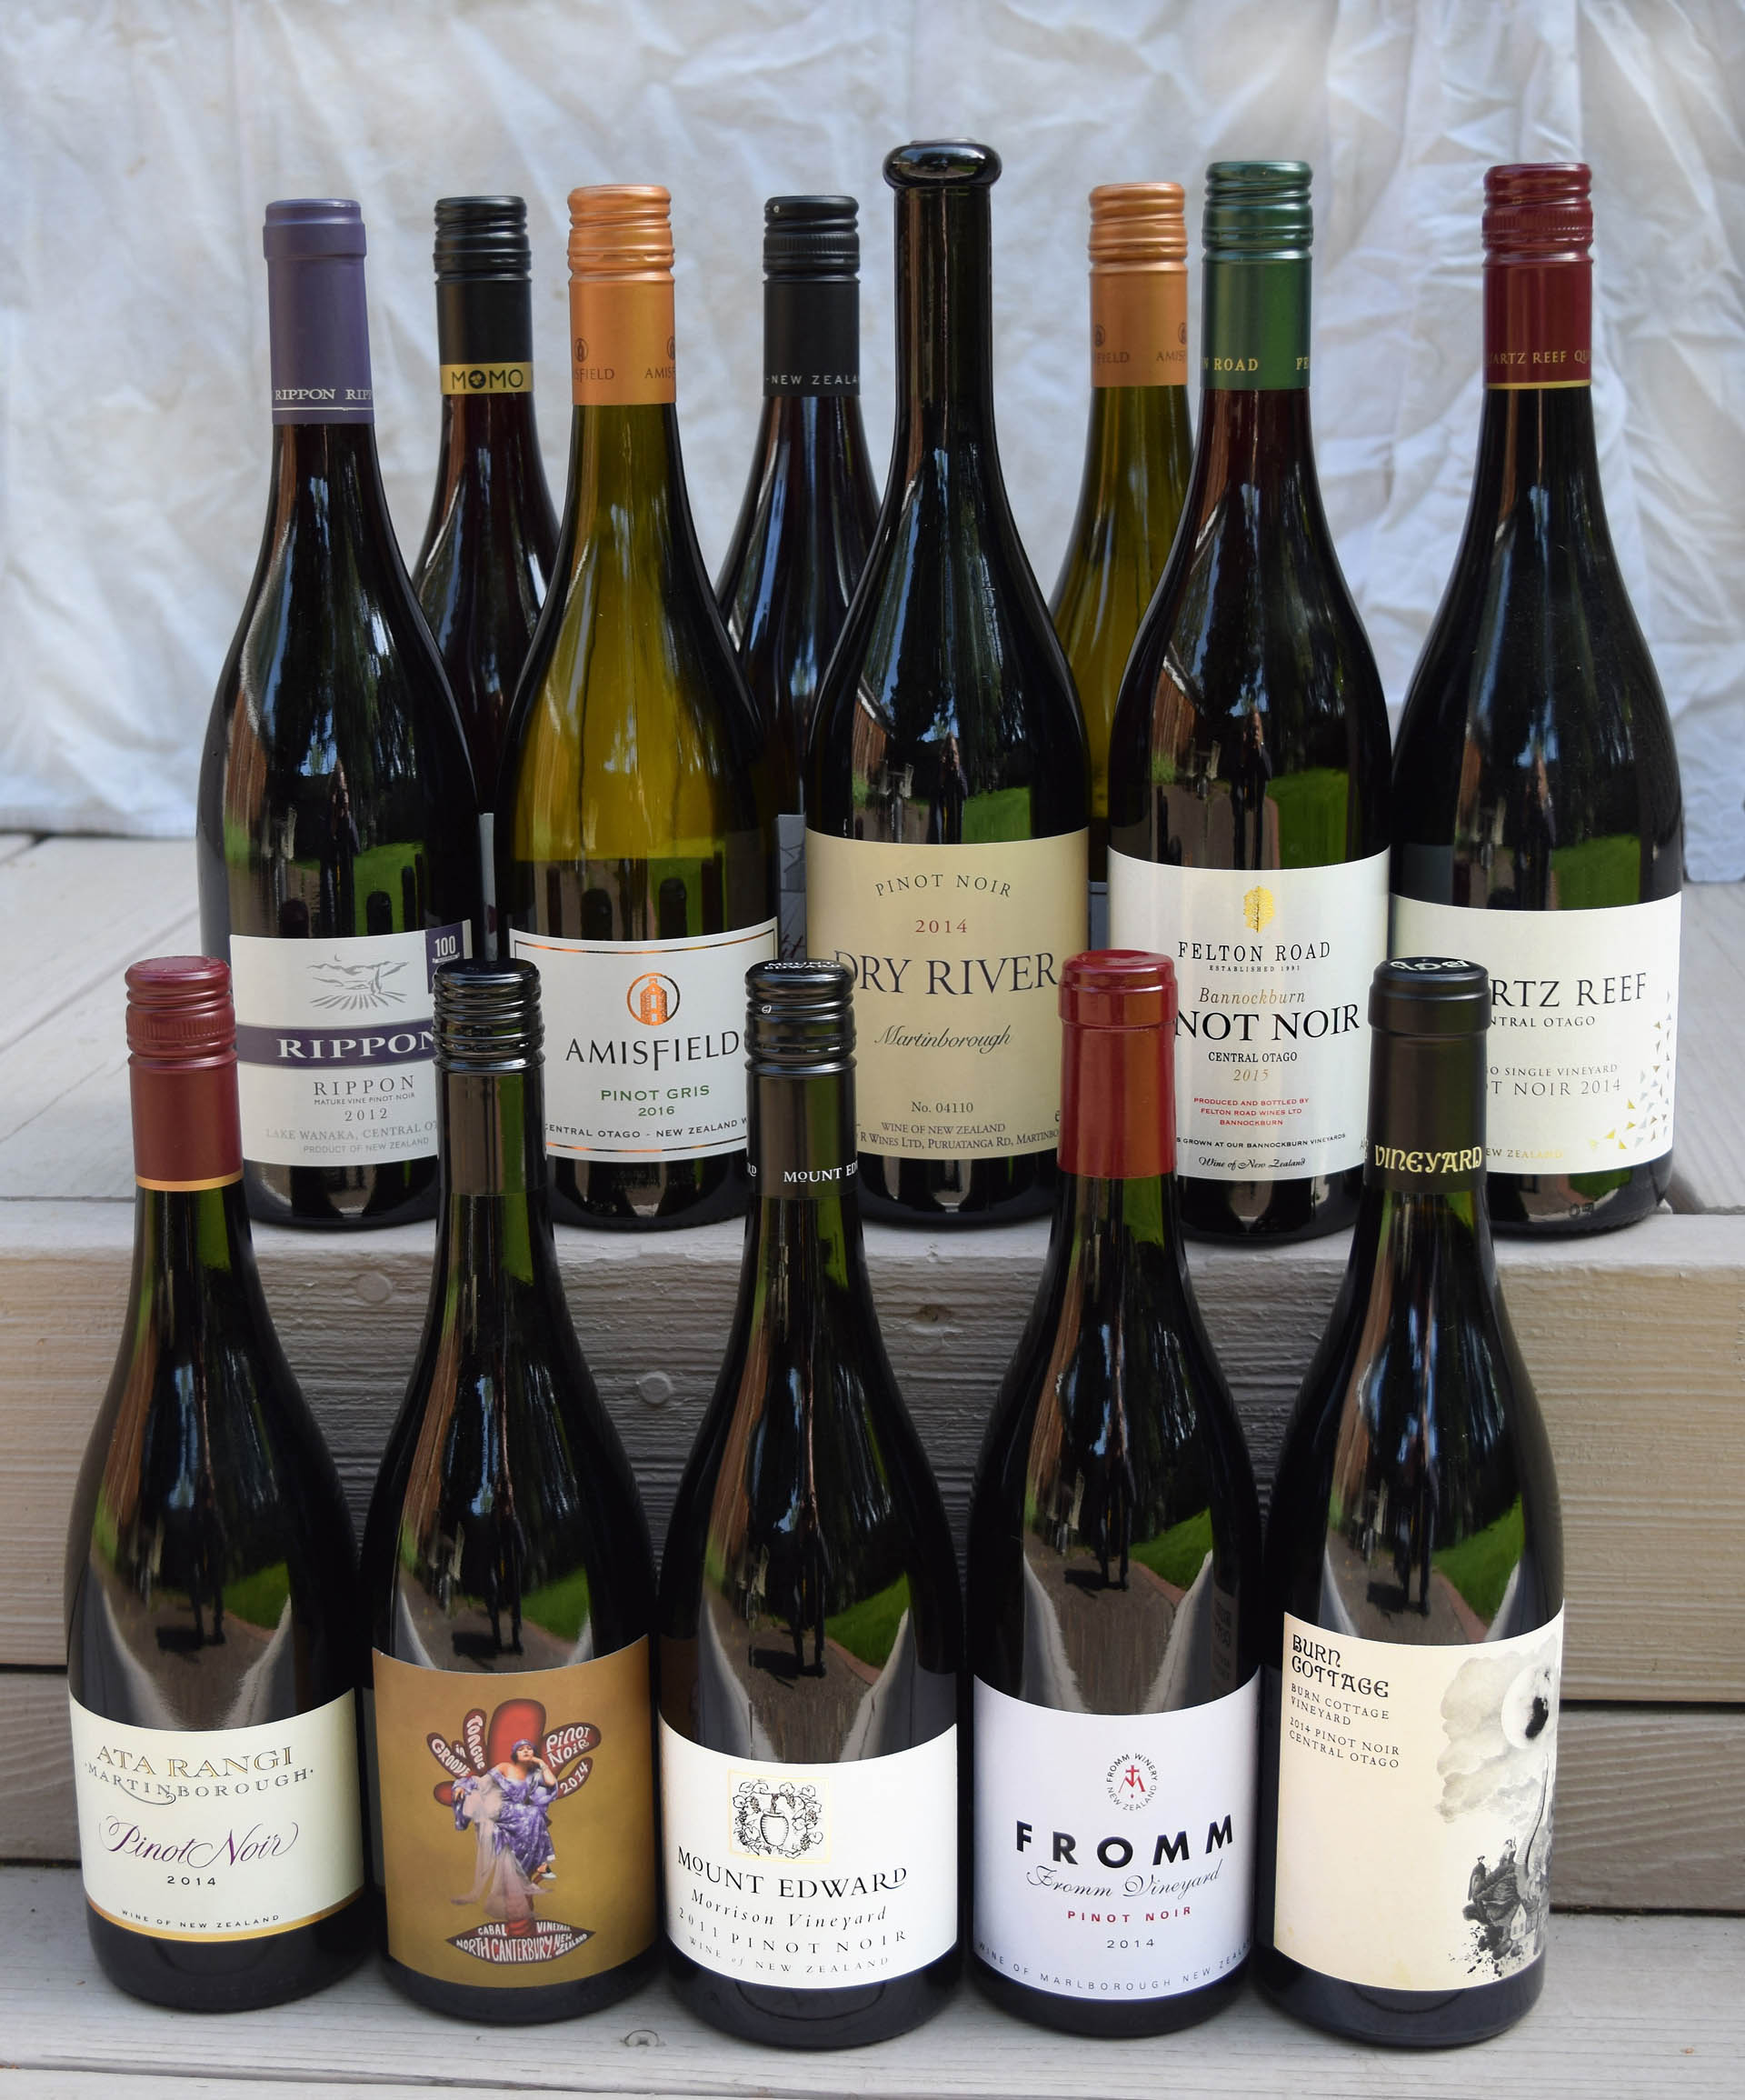 Although a small percentage of New Zealand wines makes it to the Bay Area, merchants here carry many of the country's top wines.